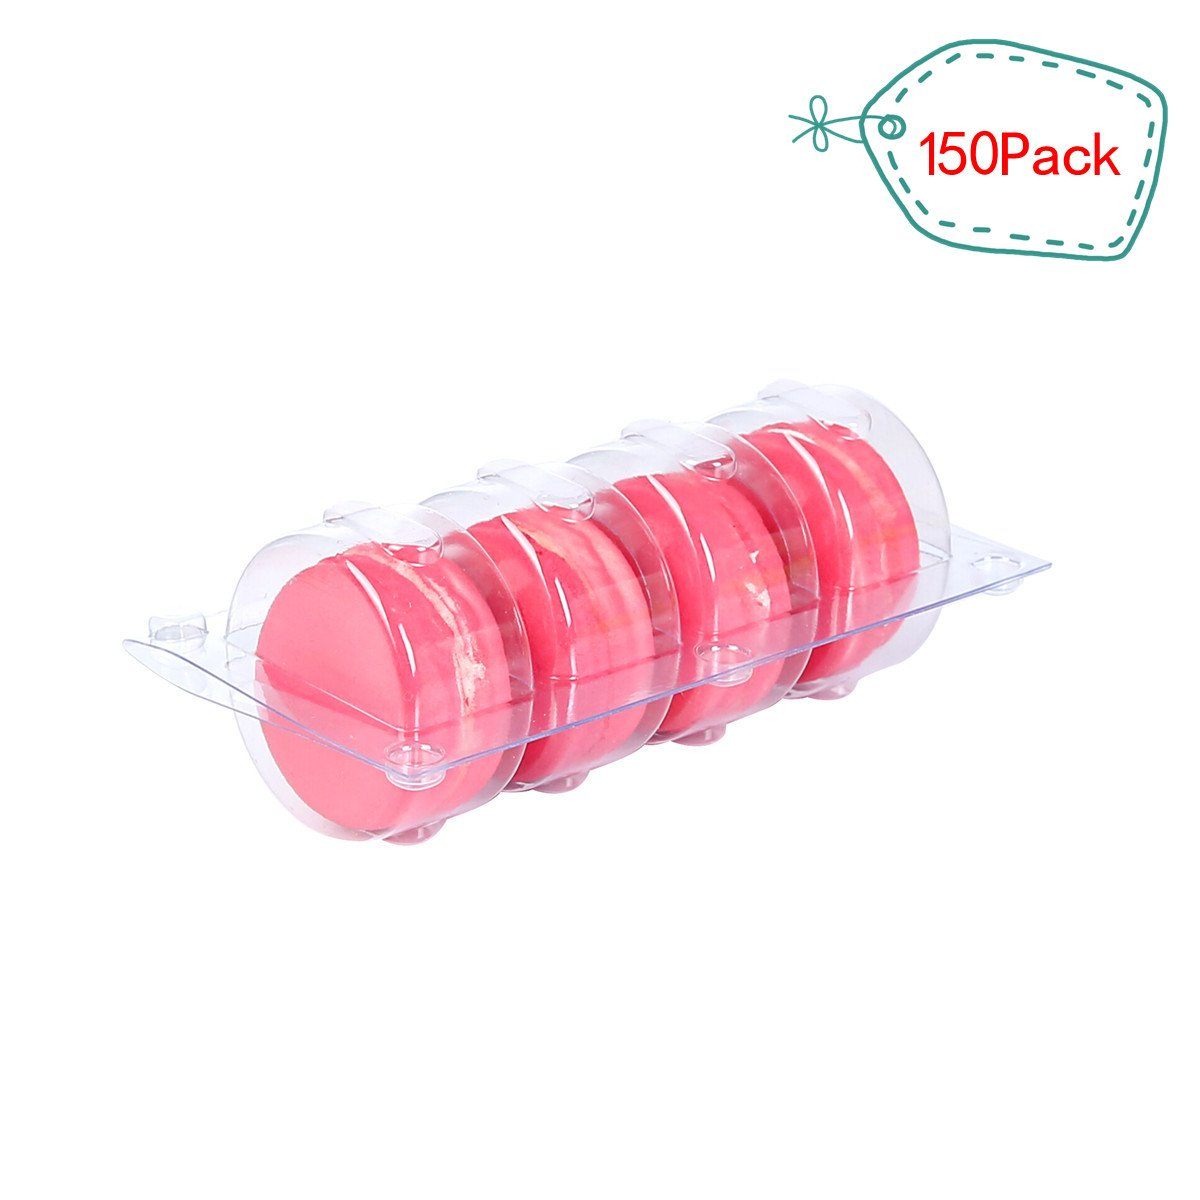 Plastic Clear Macaron Insert With Clip Closure Holds 4 Macarons (Case of 150 Sets)